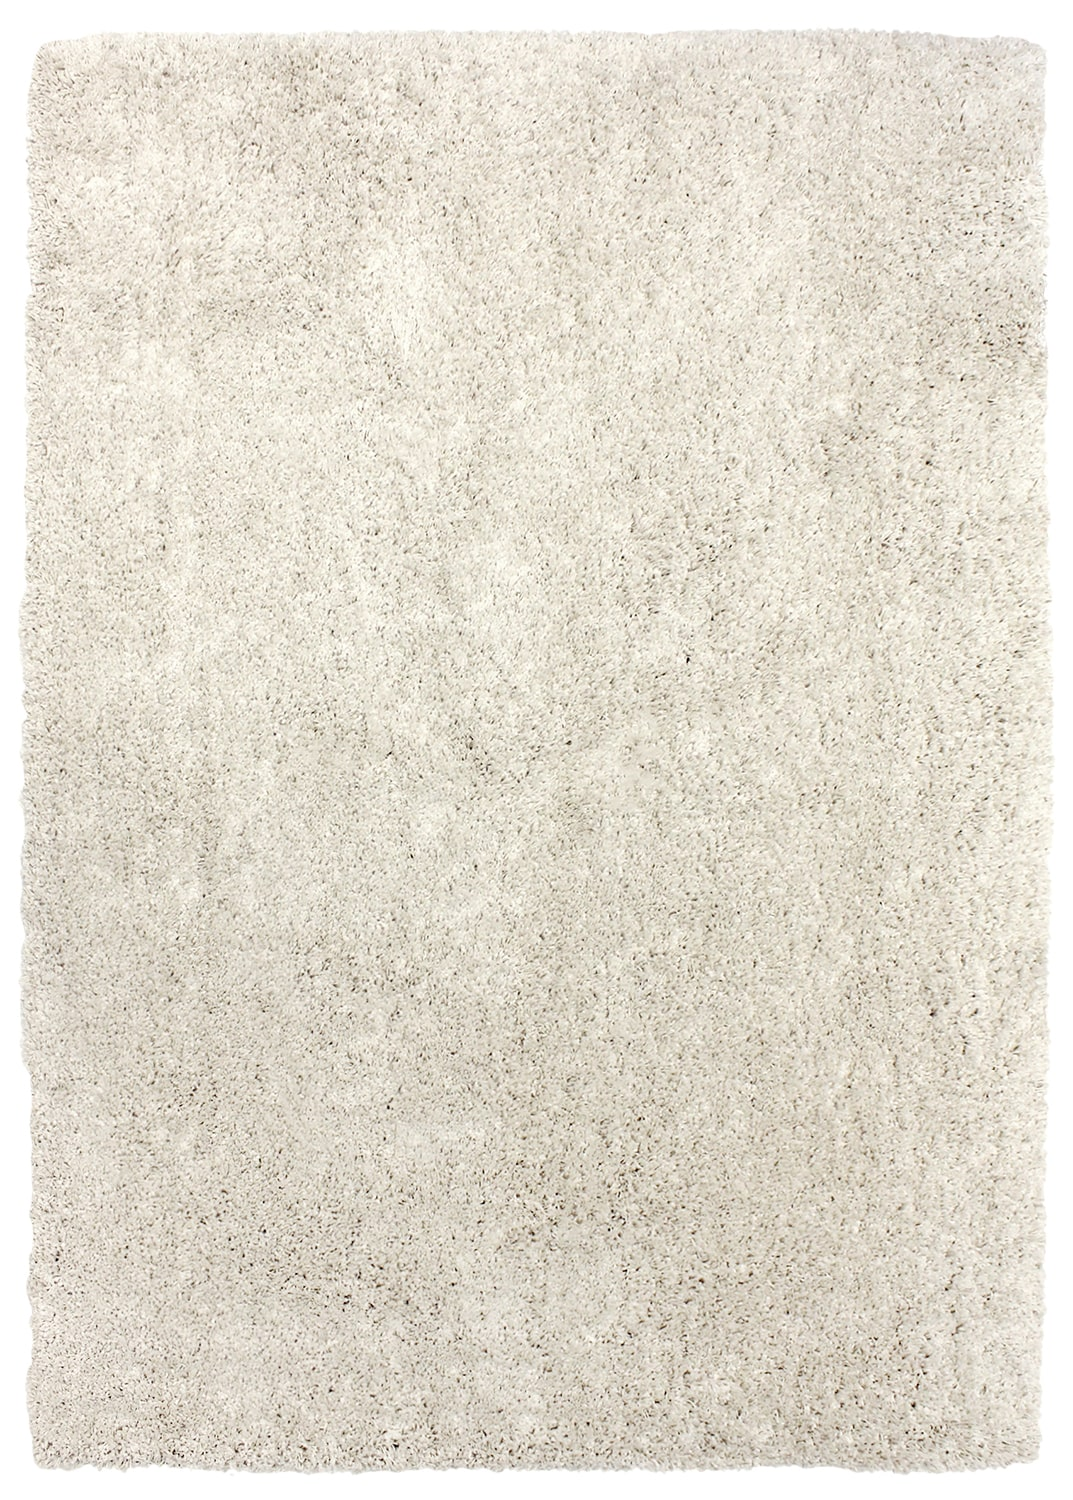 Rugs - Loft Off-White Shag Area Rug – 5' x 8'